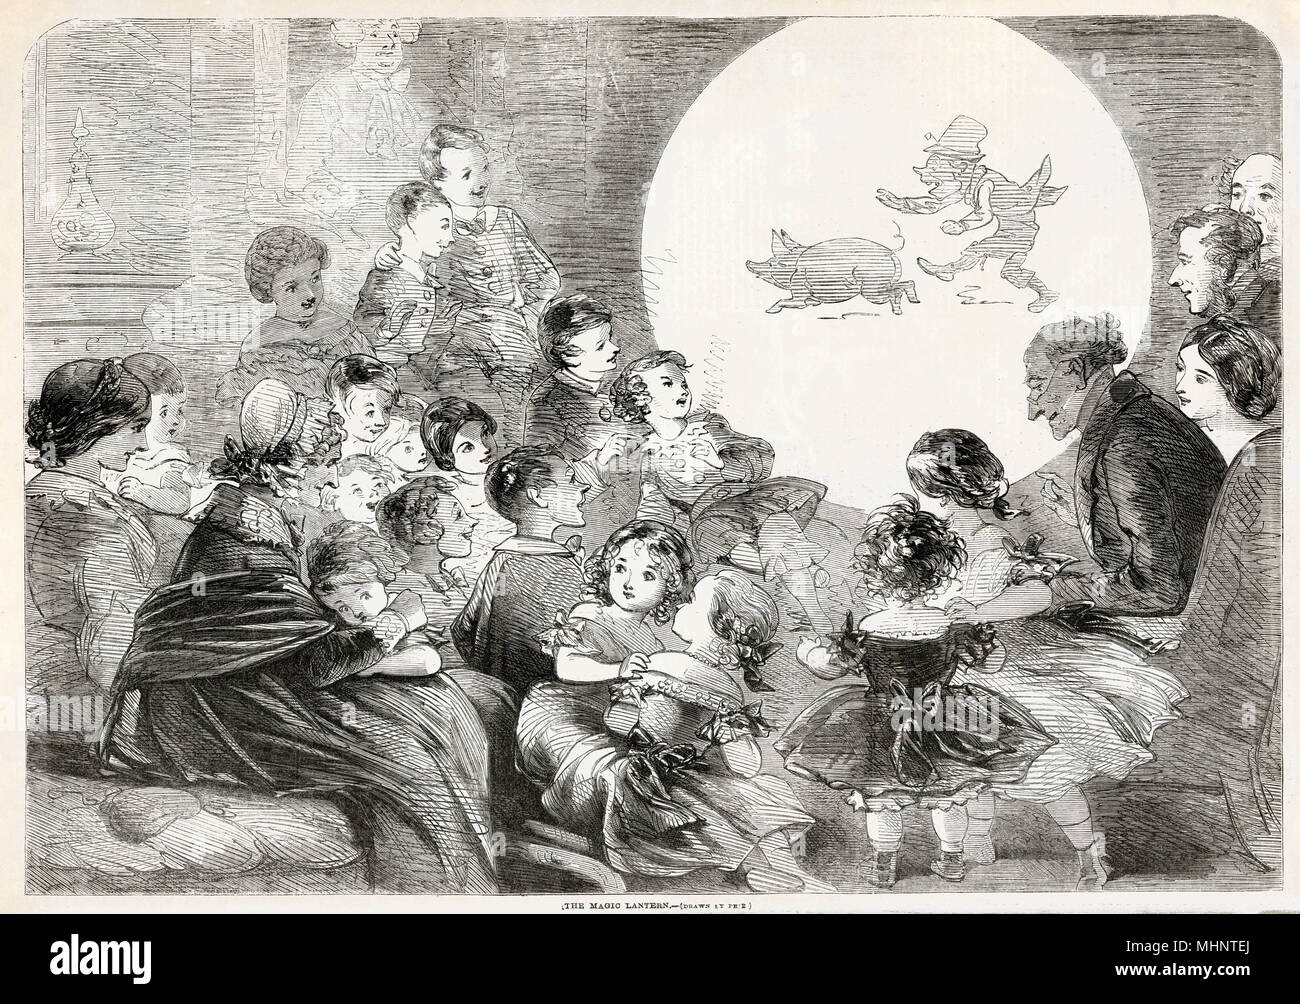 Evenings entertainment, with children amazed by the bright glass lantern slides been projected on the wall.     Date: 1858 - Stock Image